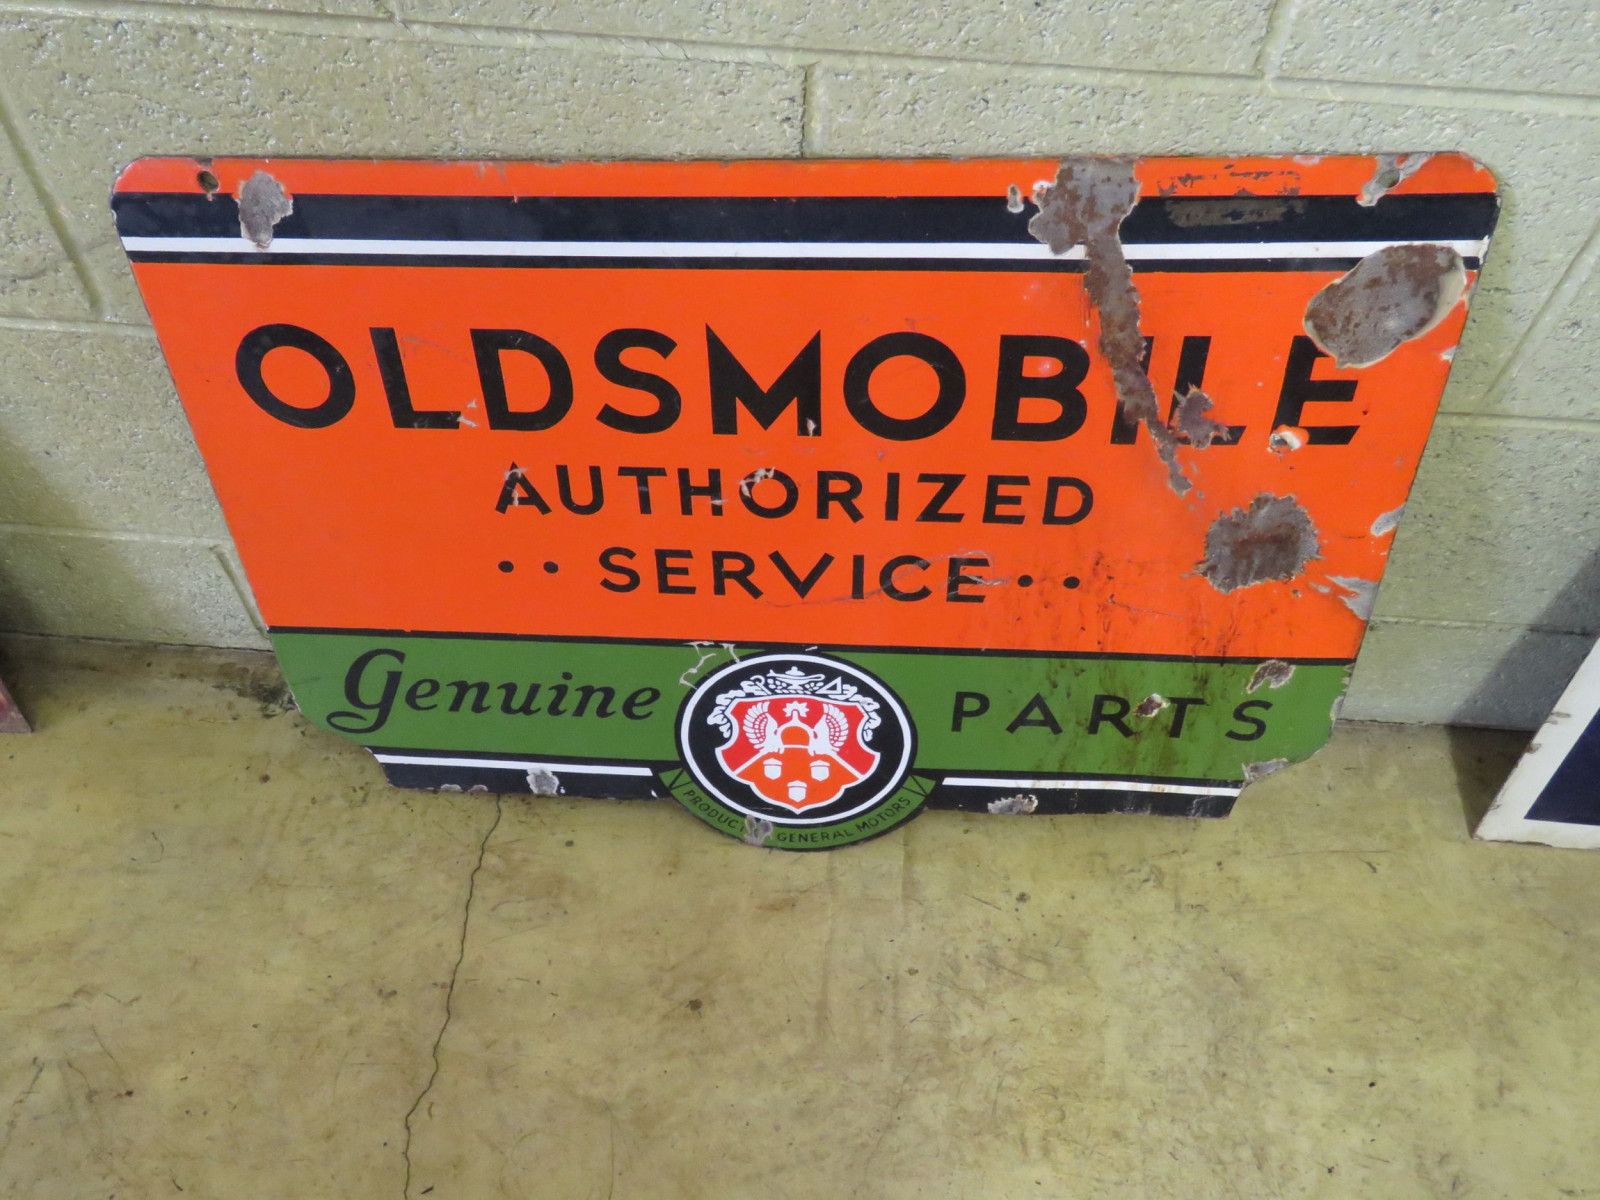 Oldsmobile Service Porcelain Sign - Image 2